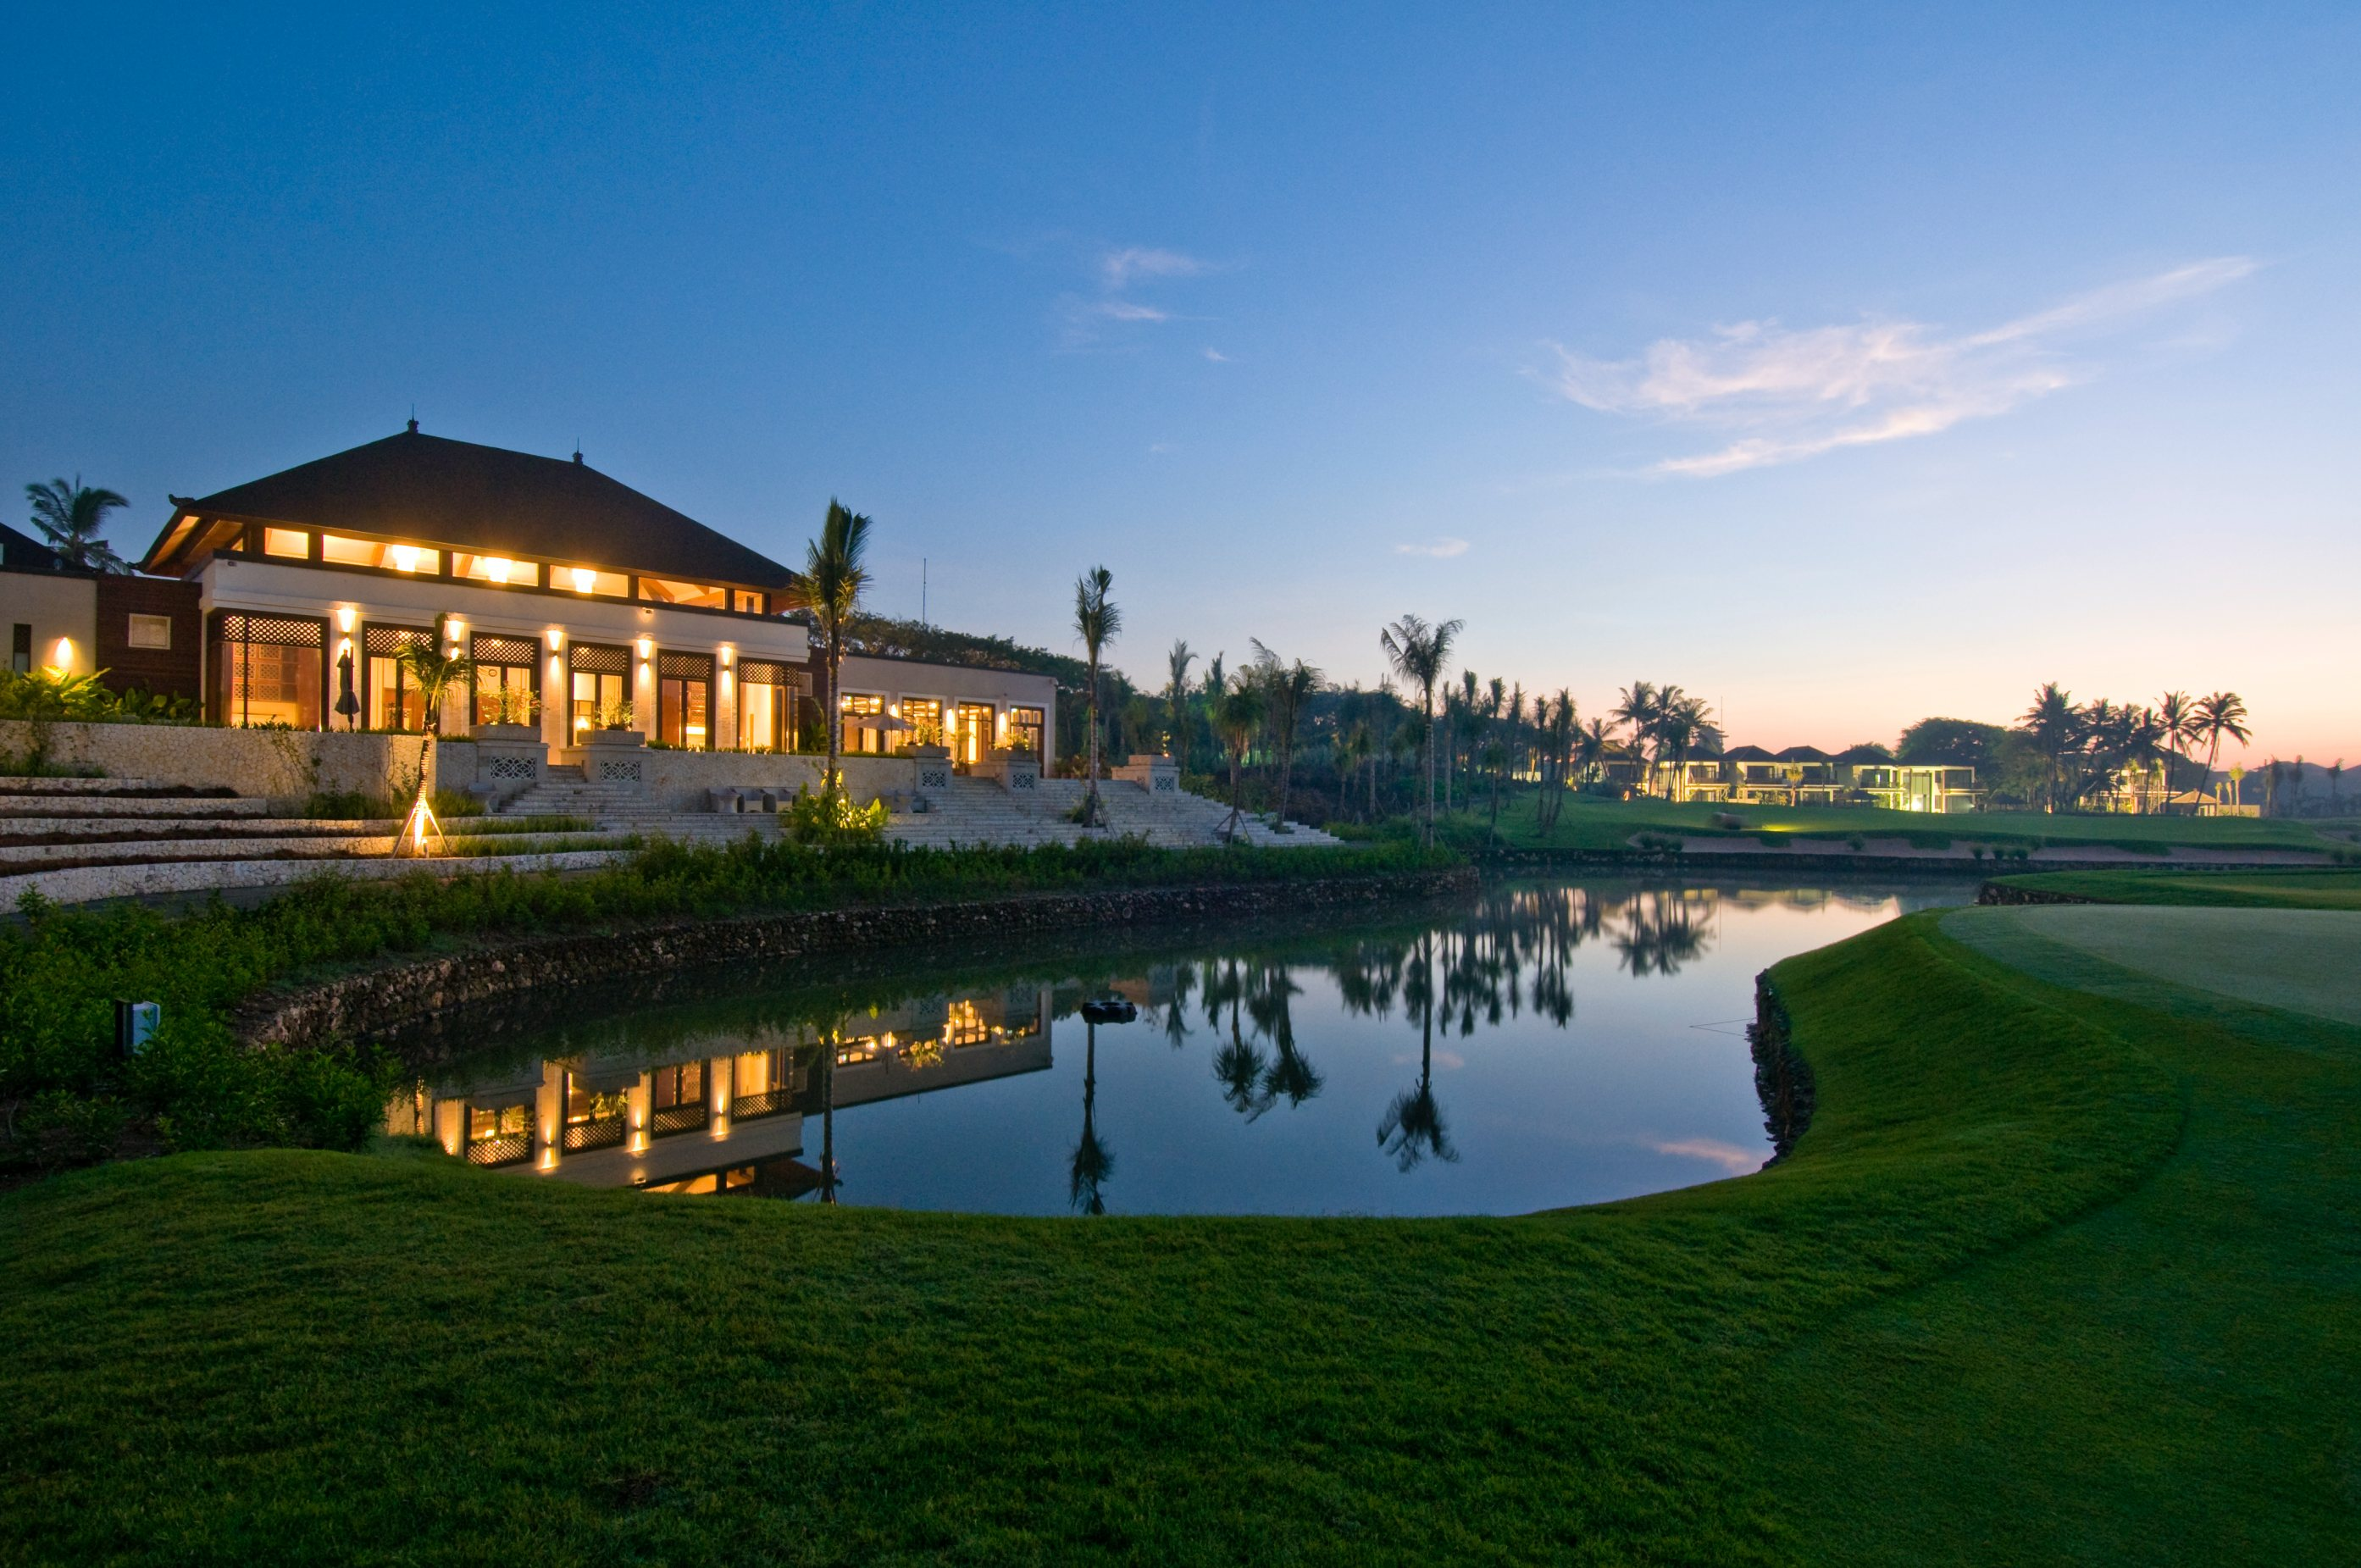 Bali National Clubhouse at nightCopy